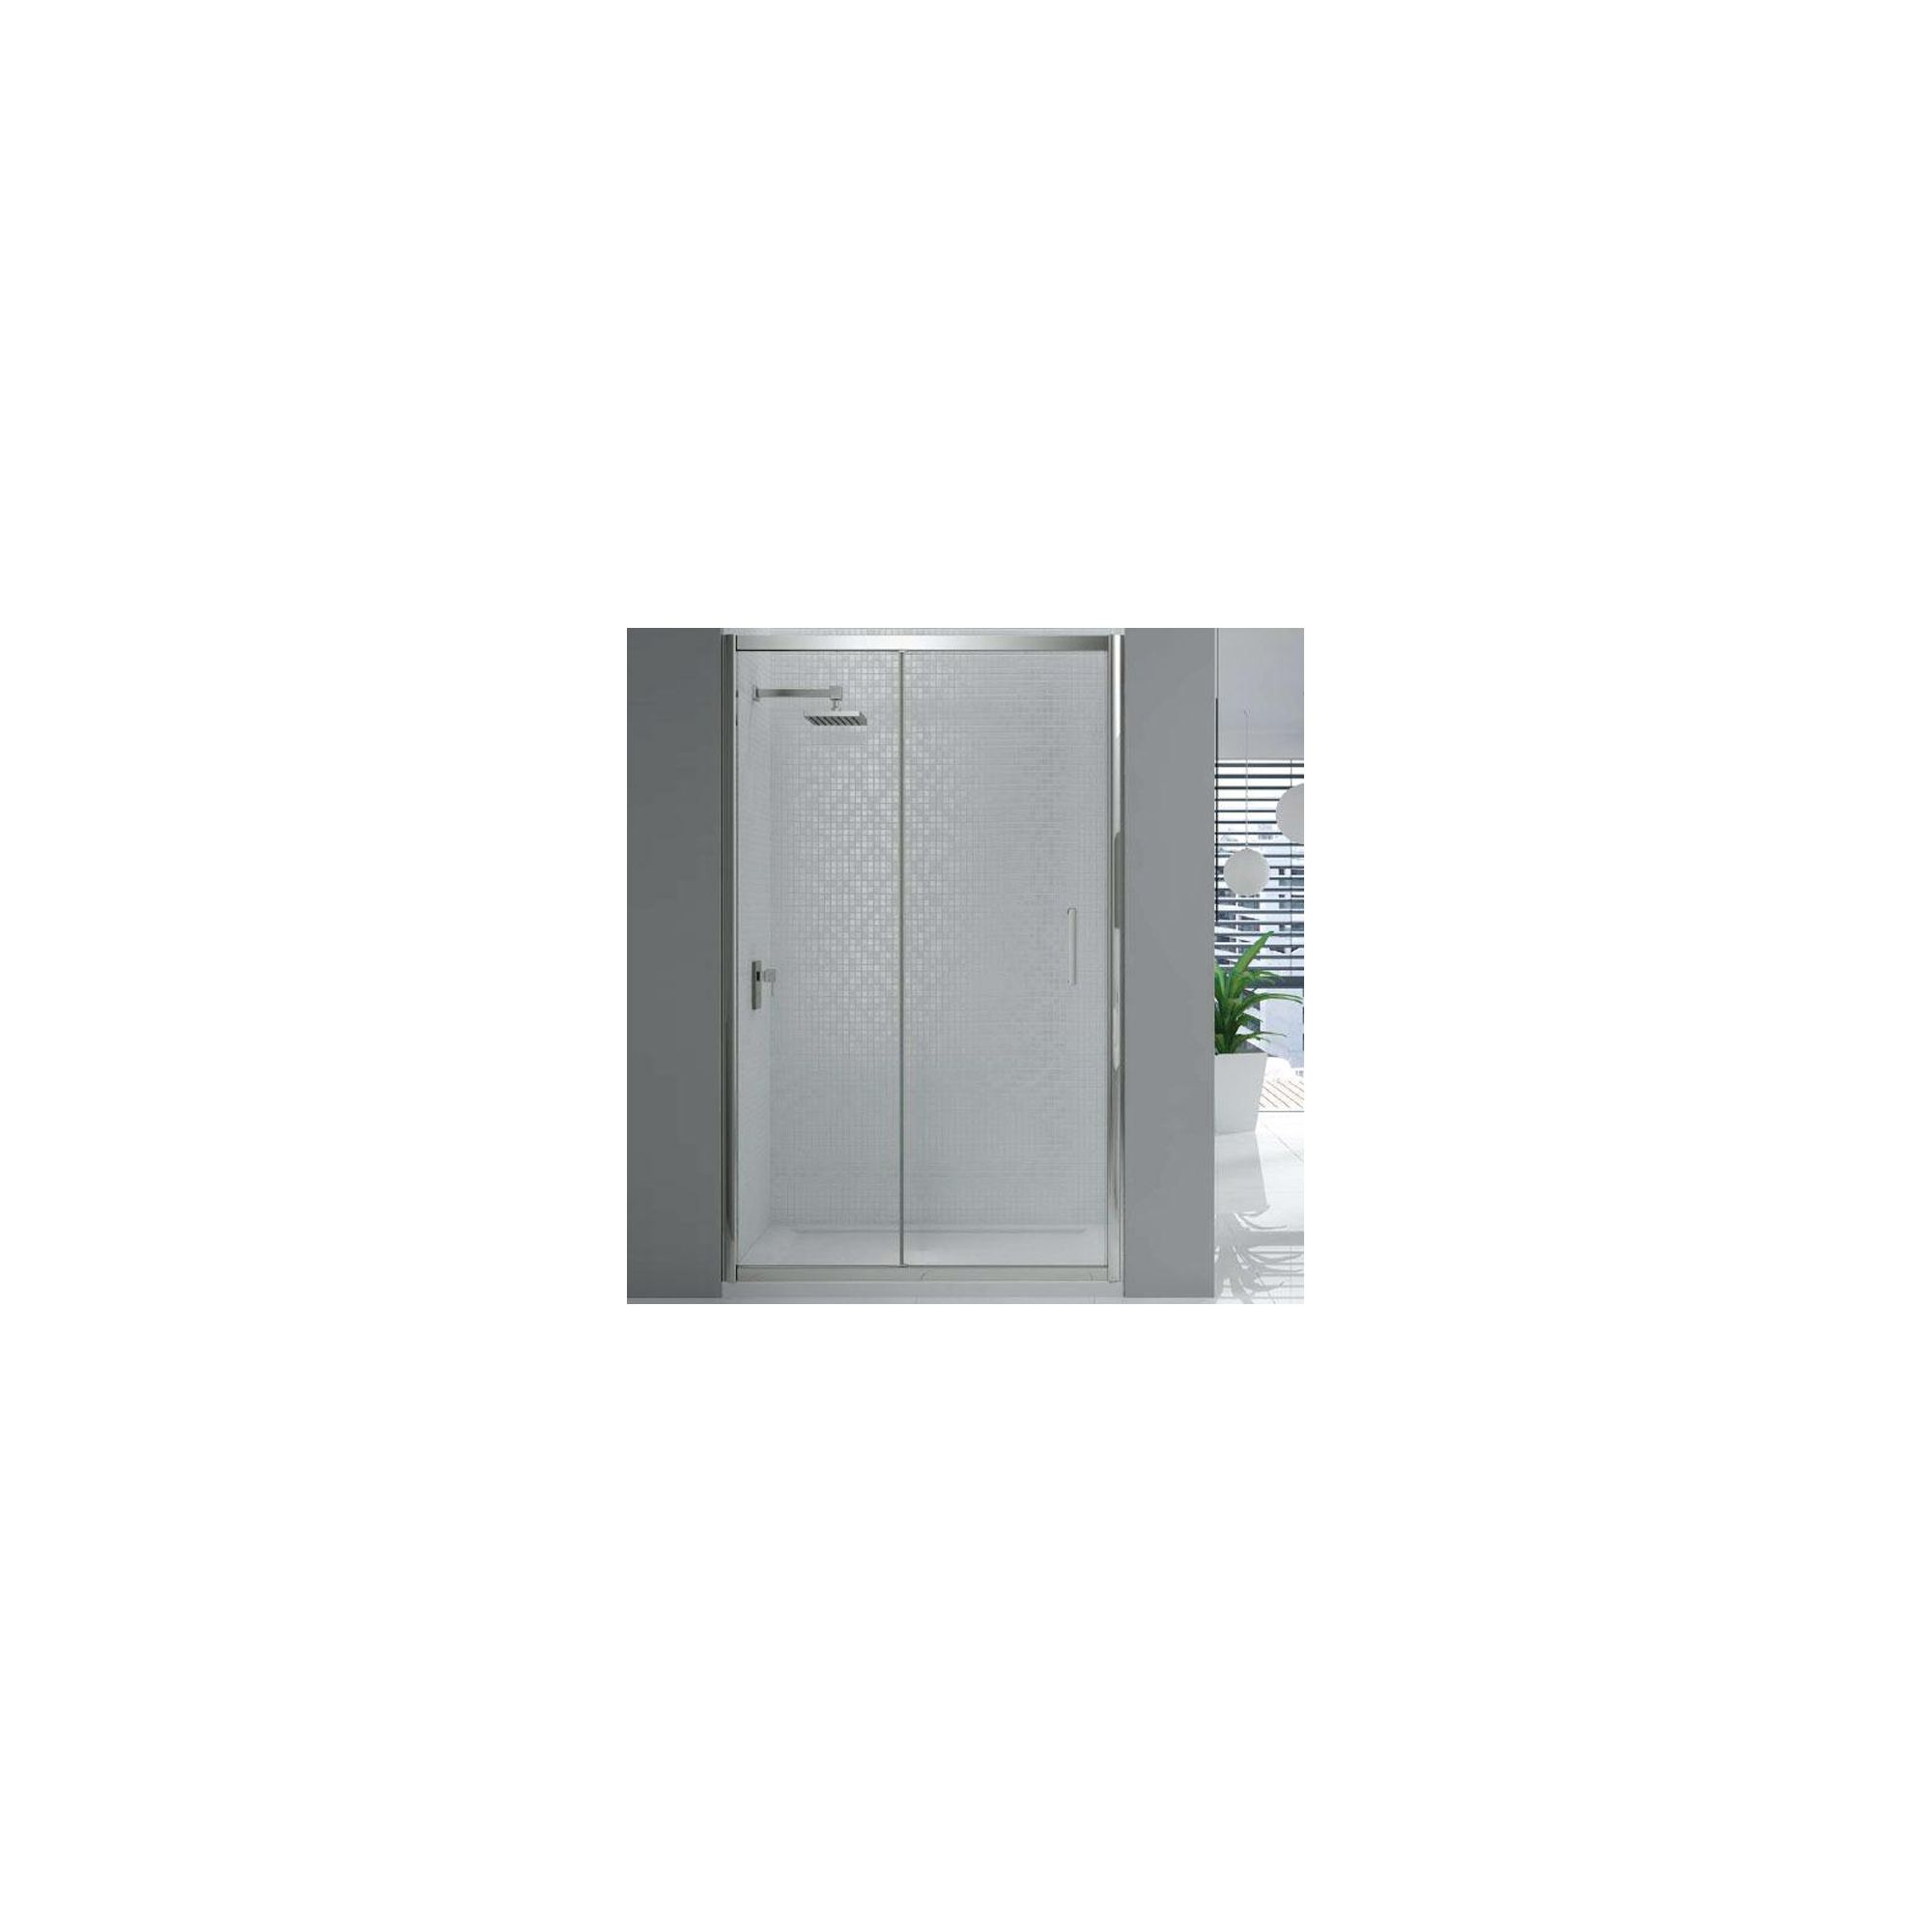 Merlyn Vivid Six Sliding Shower Door, 1500mm Wide, 6mm Glass at Tesco Direct